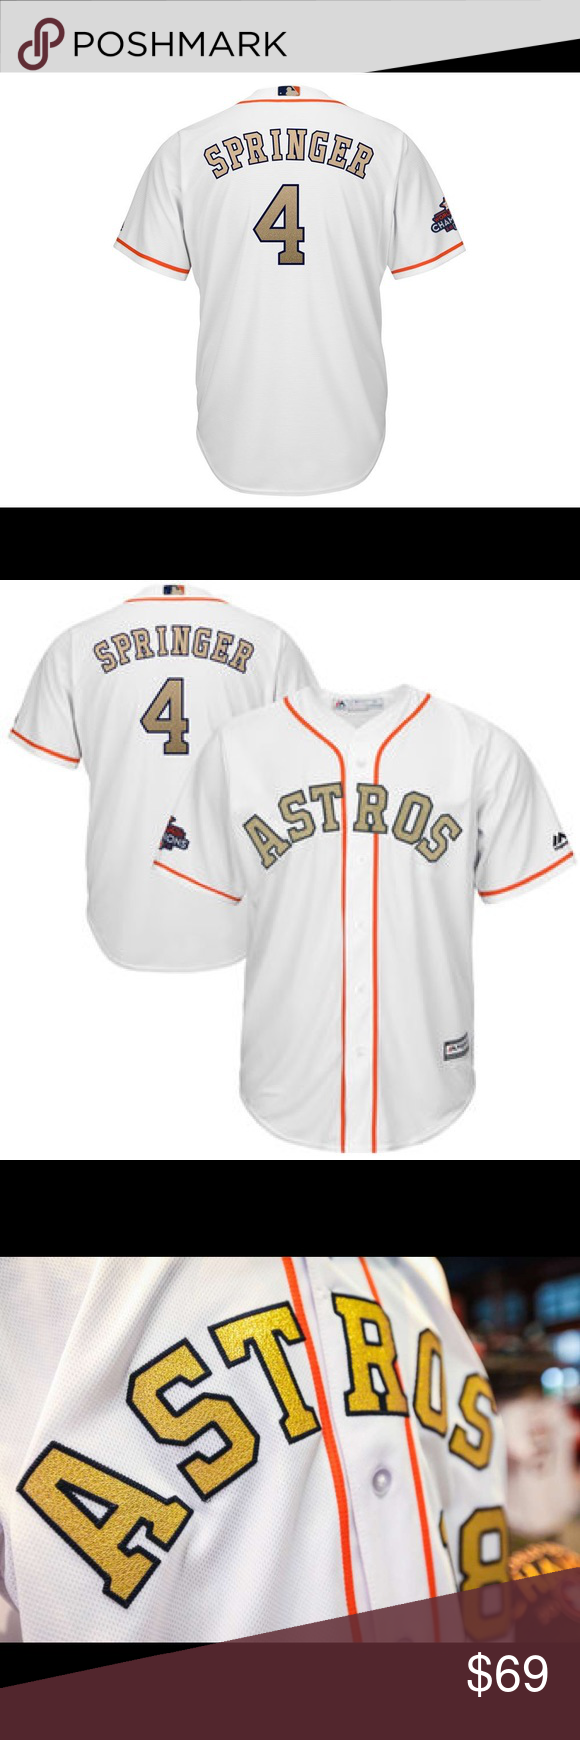 quality design 498dc e9622 COMING SOON* George Springer Astros Gold Jerseys COMING SOON ...